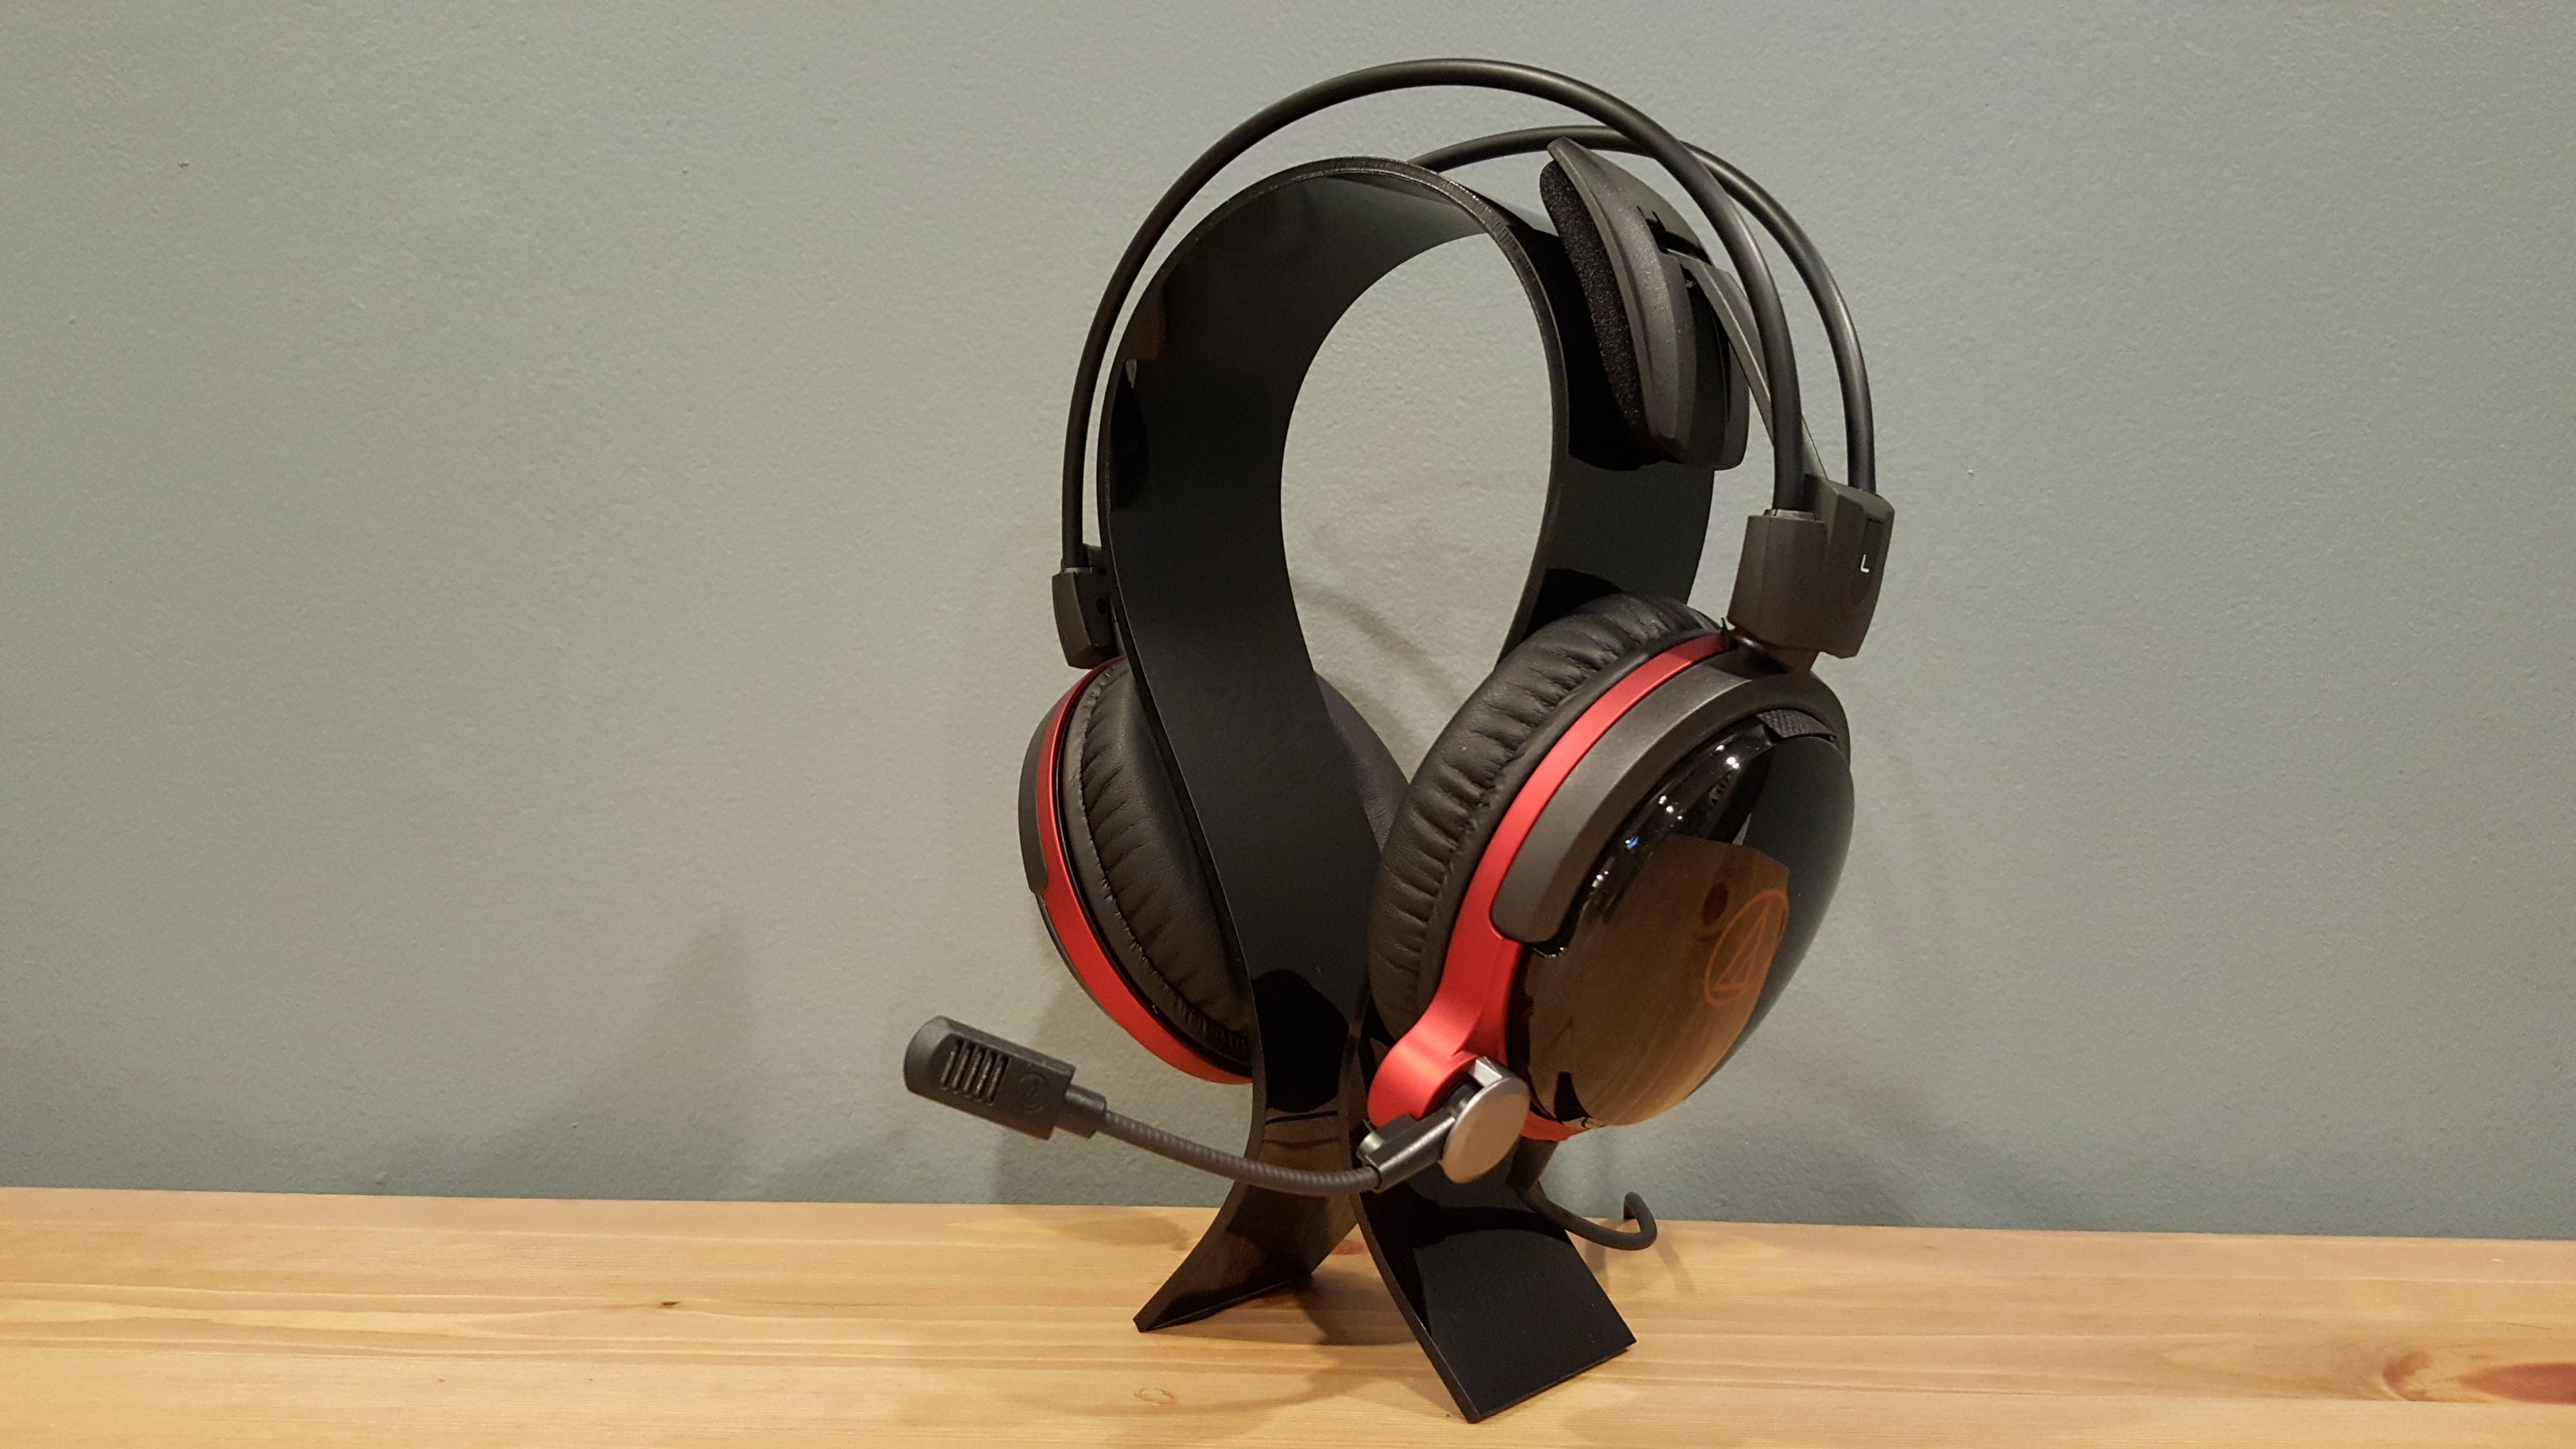 Audio Technica Ath Ag1x Review A Good Gaming Headset With One Basic Mobile To Pc Cable Killer Flaw Pcworld